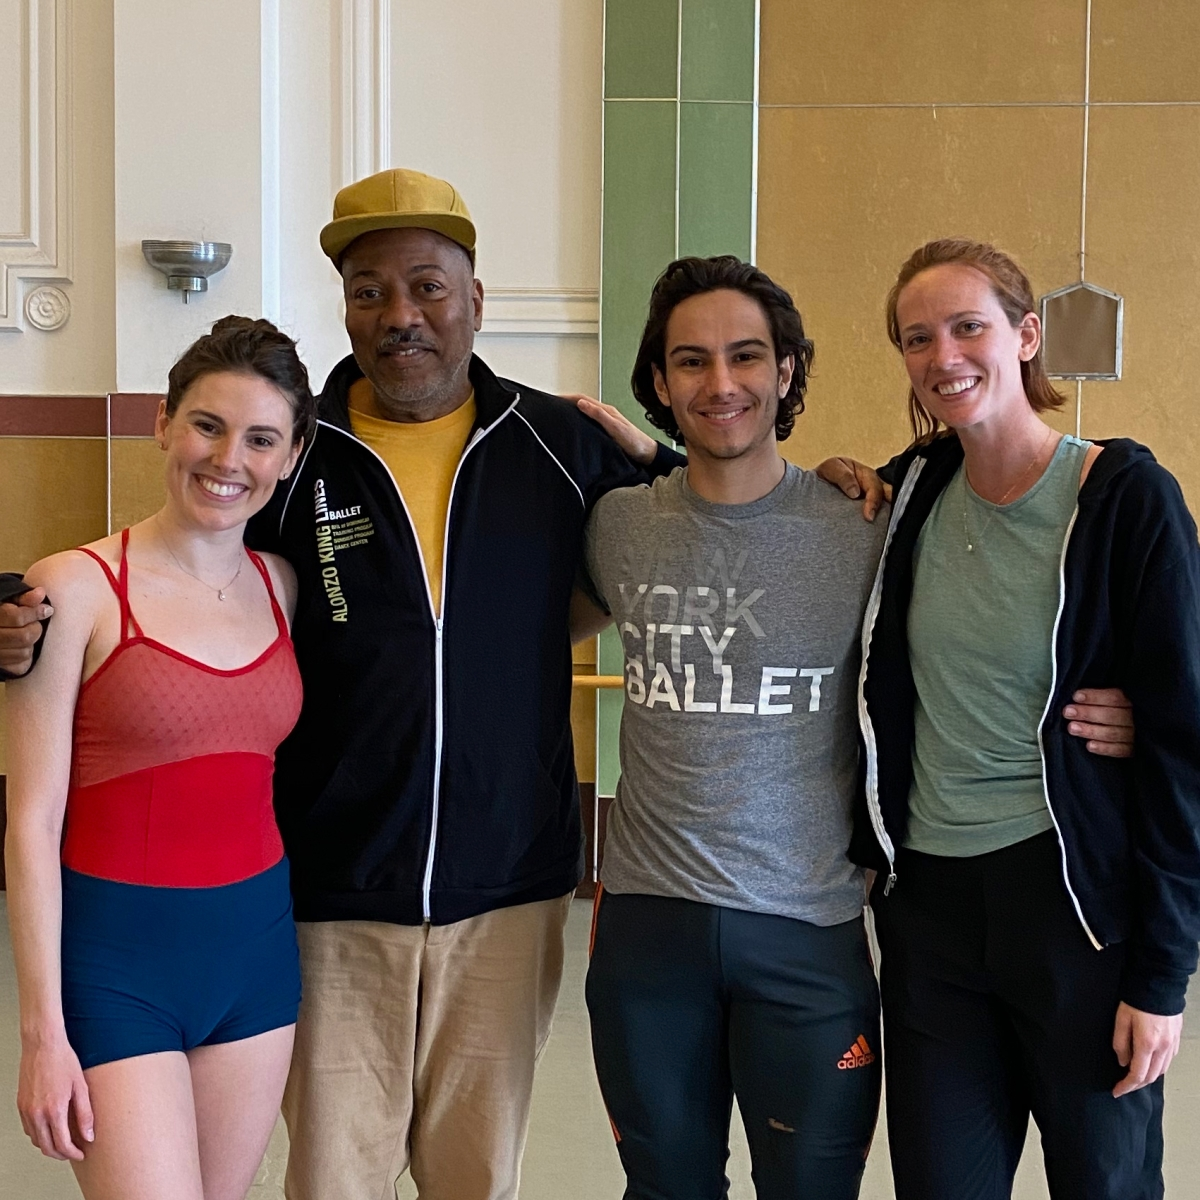 Left to Right: Tiler Peck, Alonzo King, Roman Mejia, Maddie DeVries, standing and smiling together in Studio 5 at LINES Dance Center